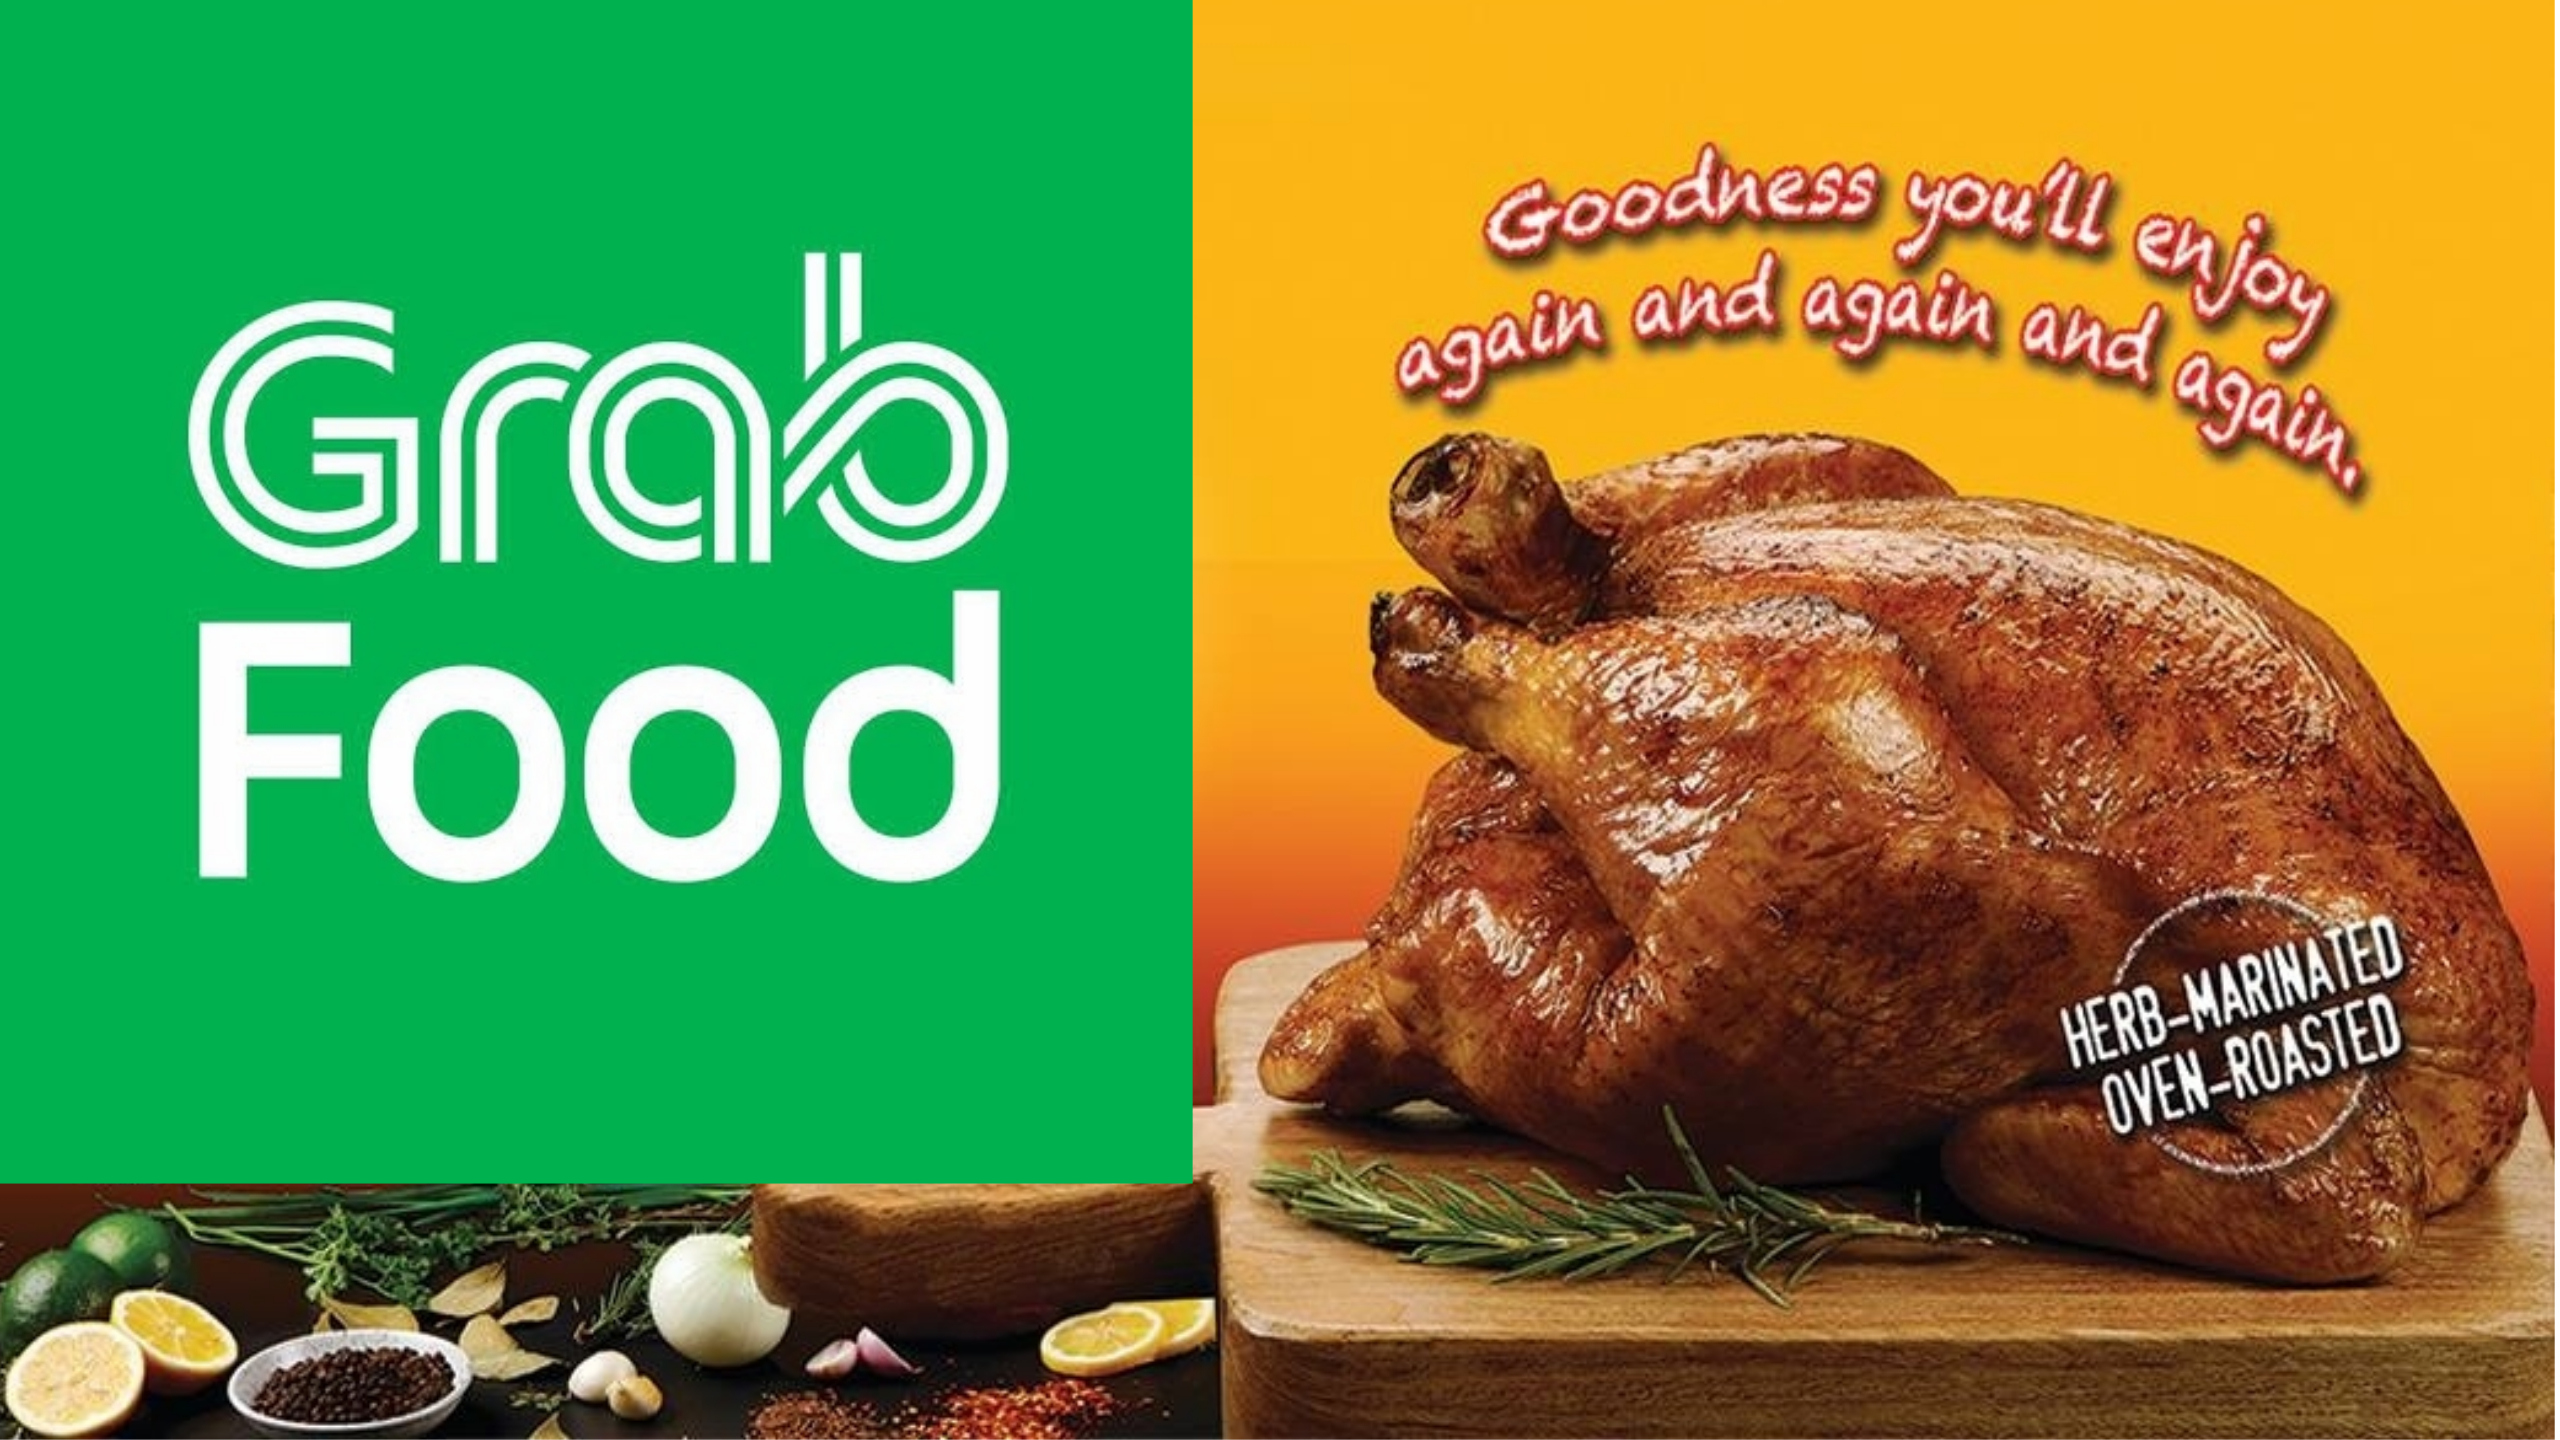 Rocko's chicken available in Grab Food